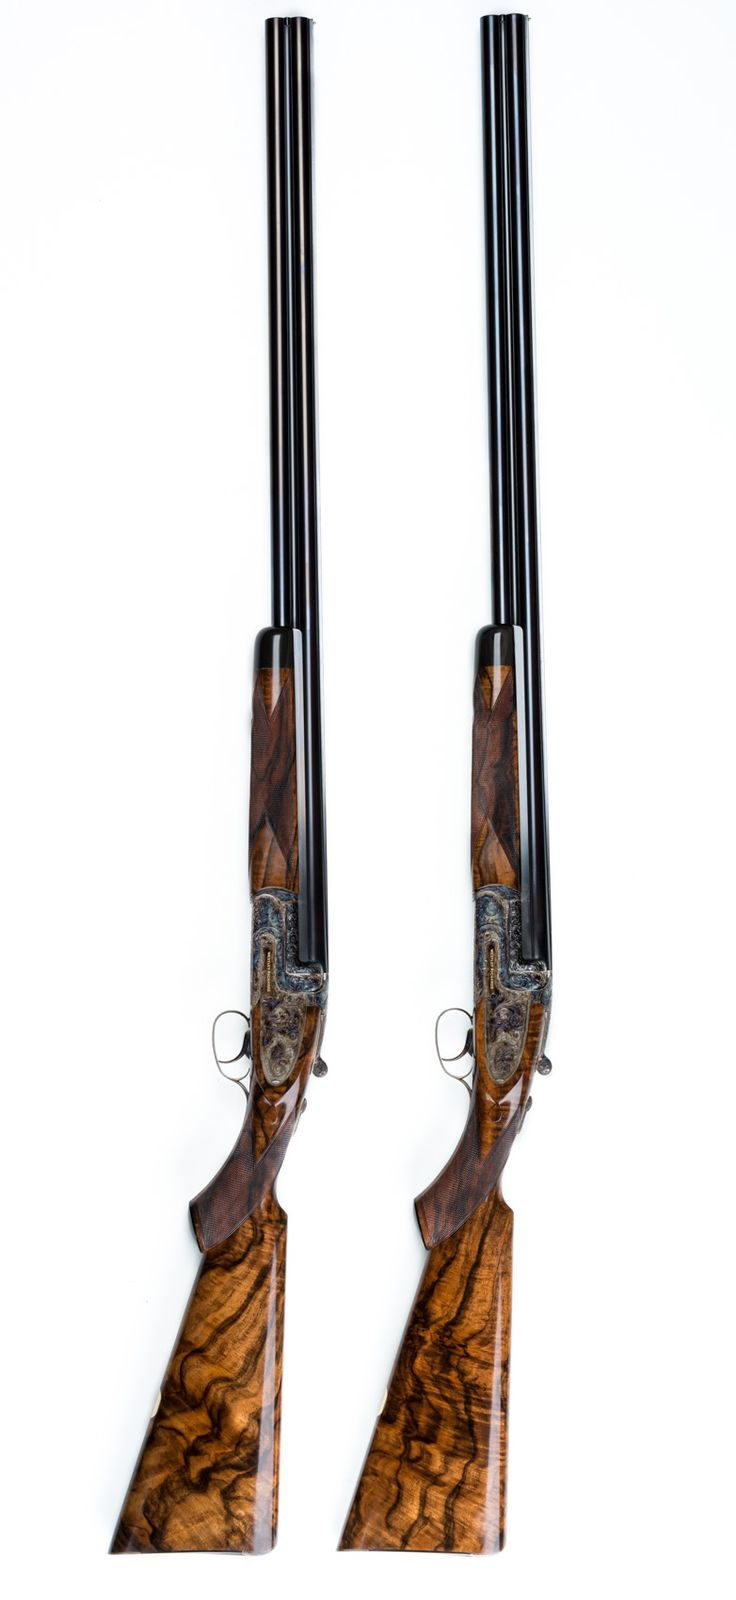 Pair of Westley Richards 20g 'Ovundo' Single Selective Trigger Droplock Shotguns